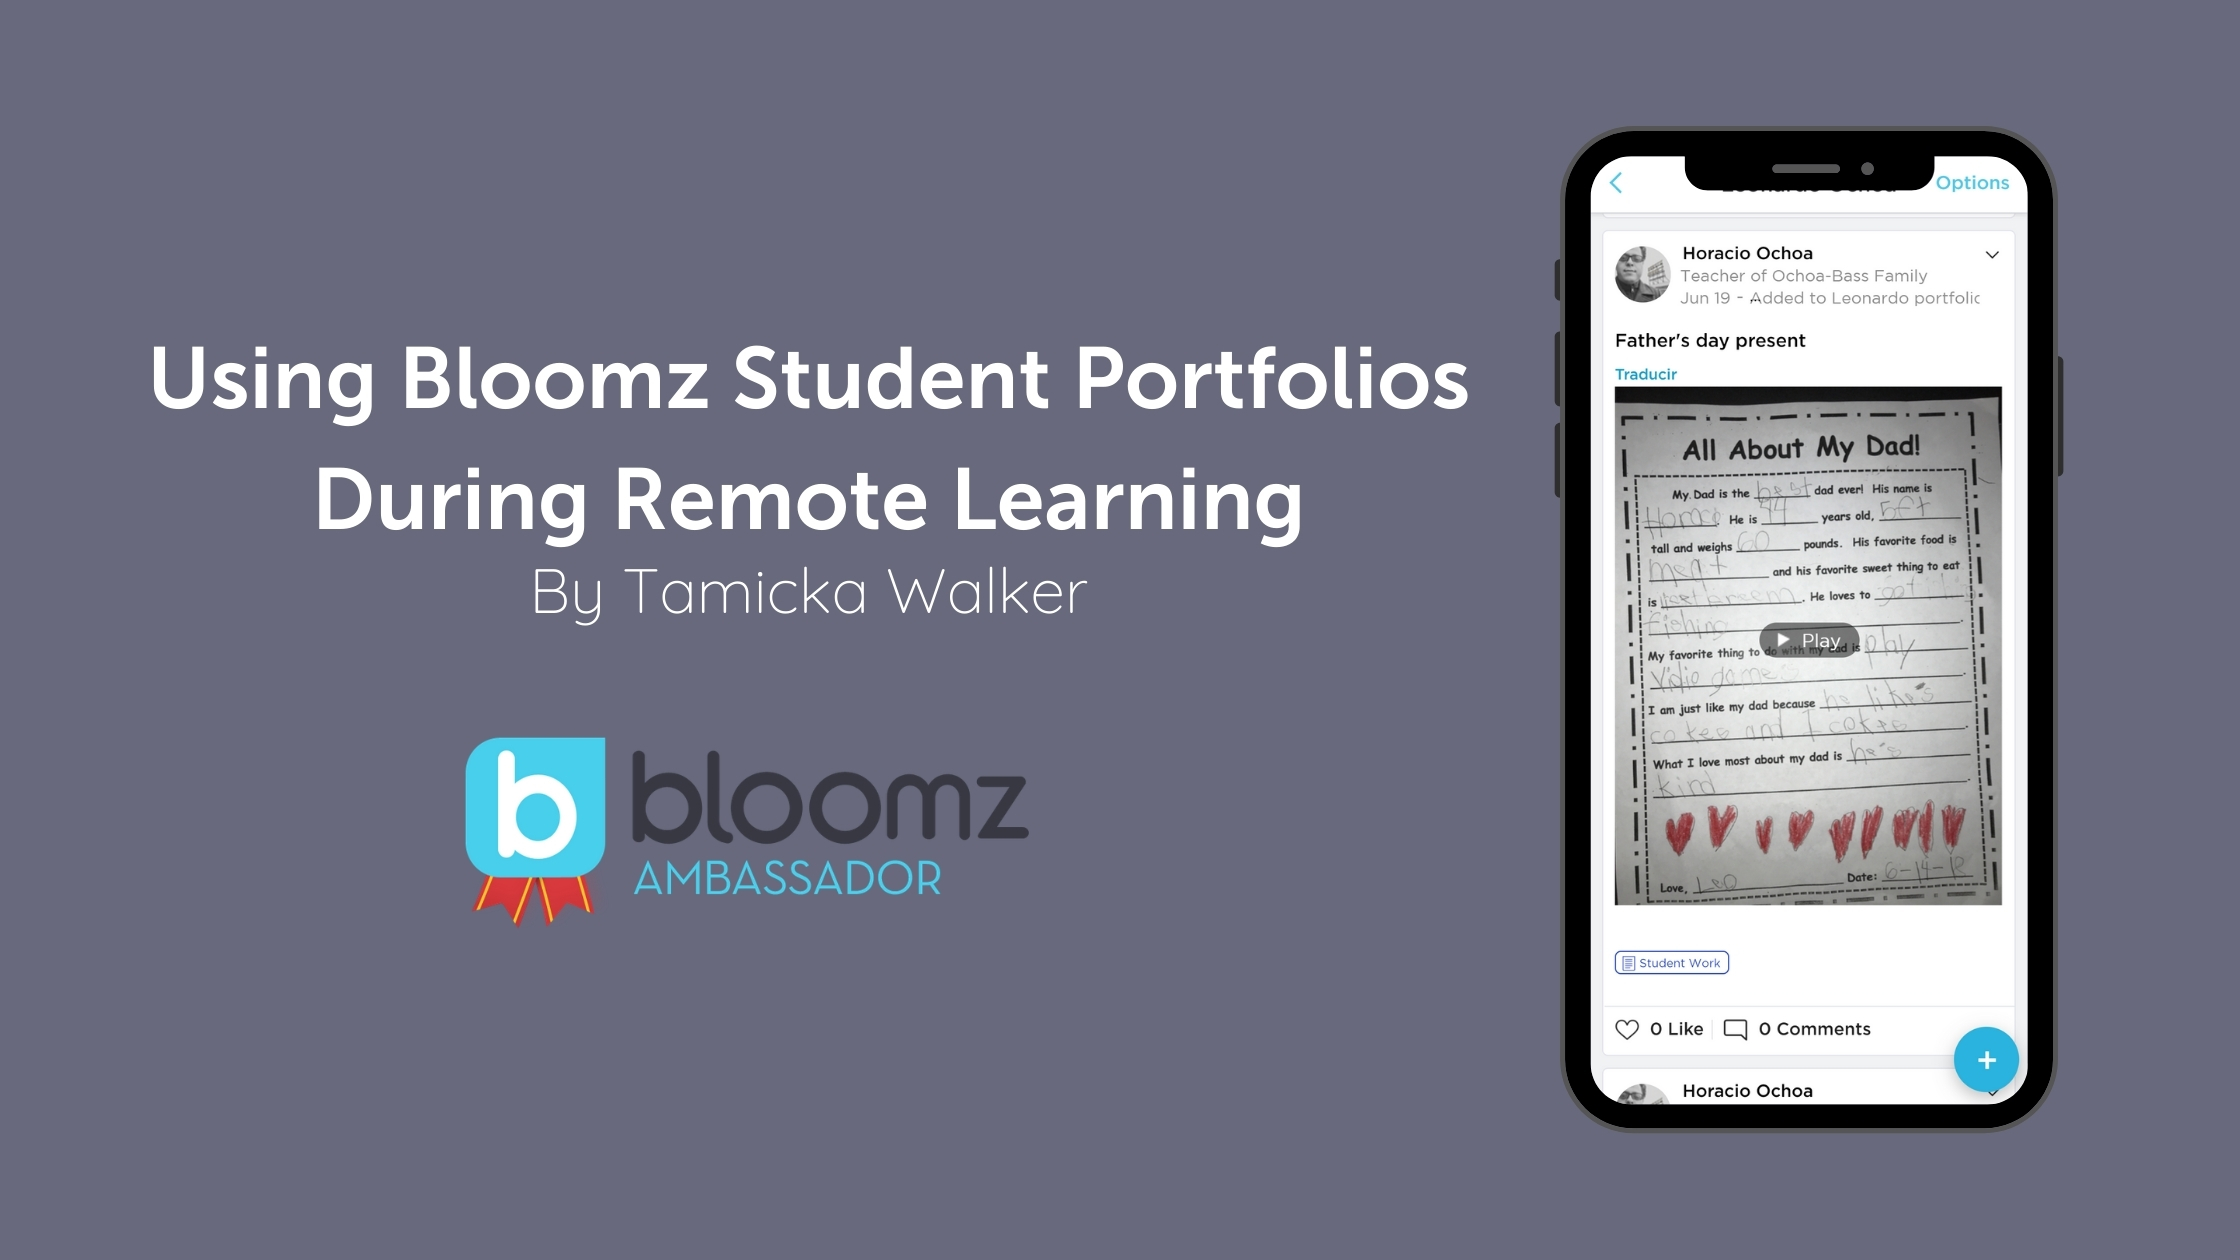 Using Bloomz Student Portfolios During Remote Learning